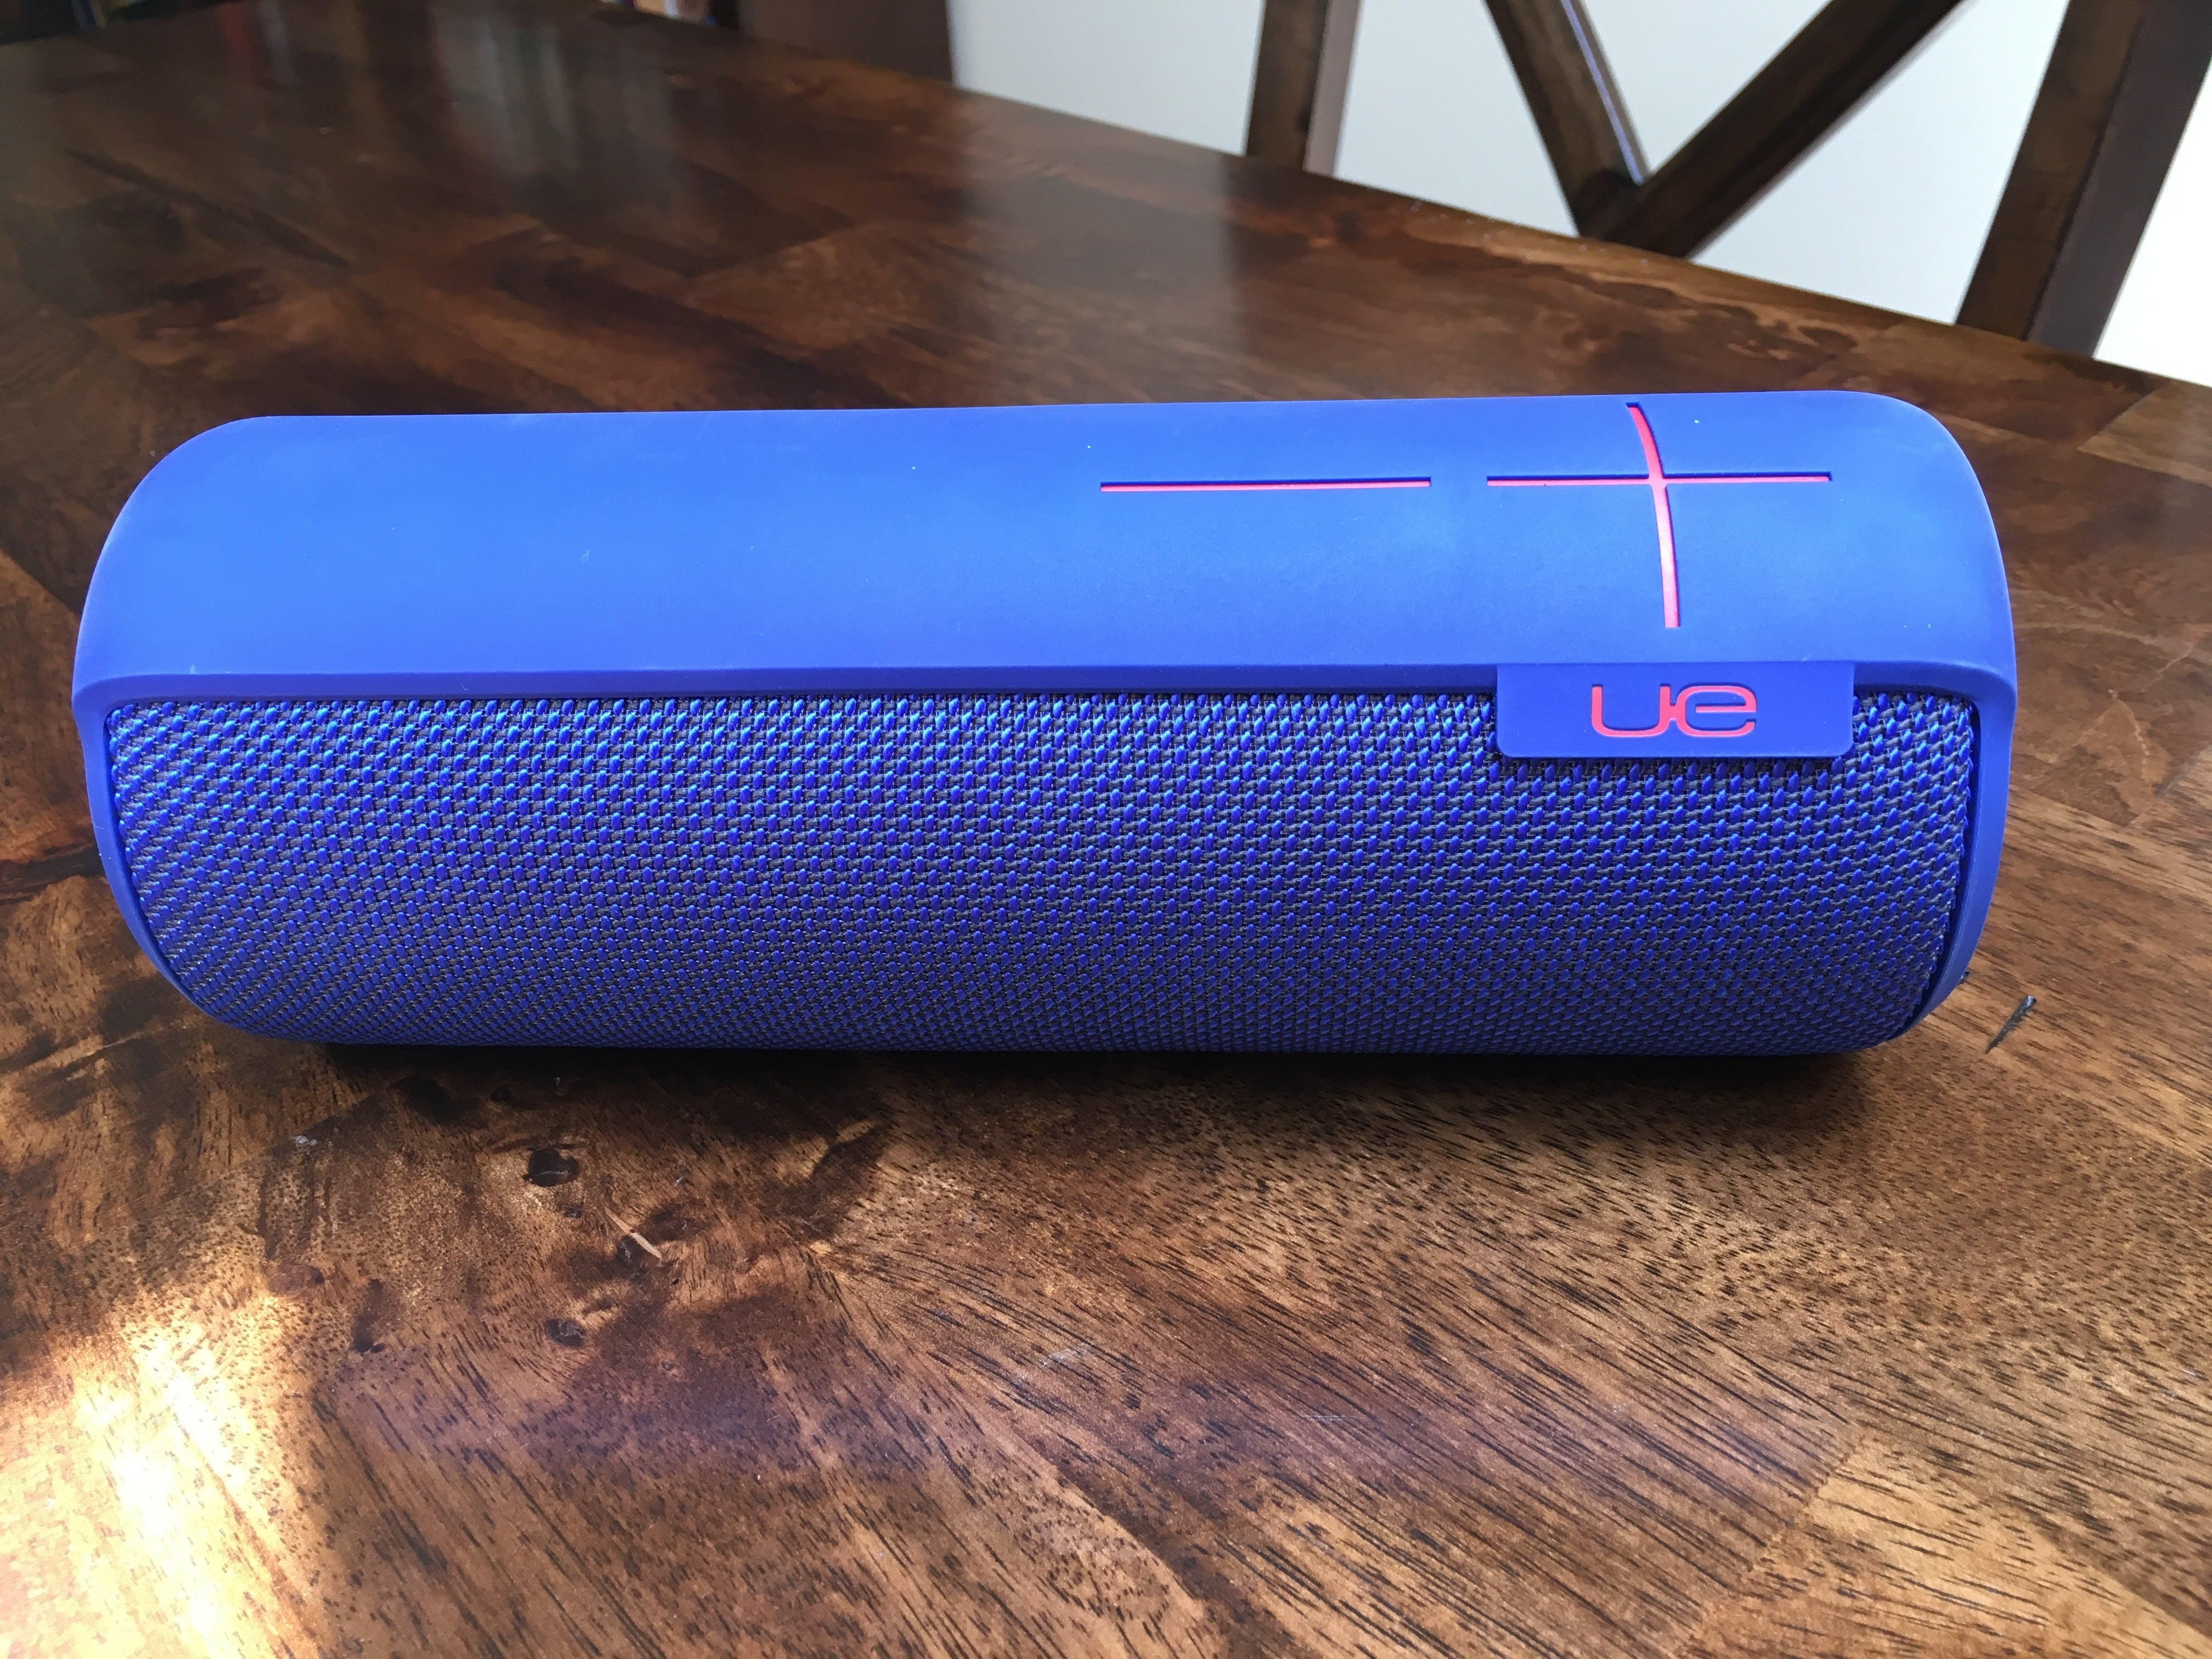 Ultimate Ears Megaboom Bluetooth speaker review: Life of the party